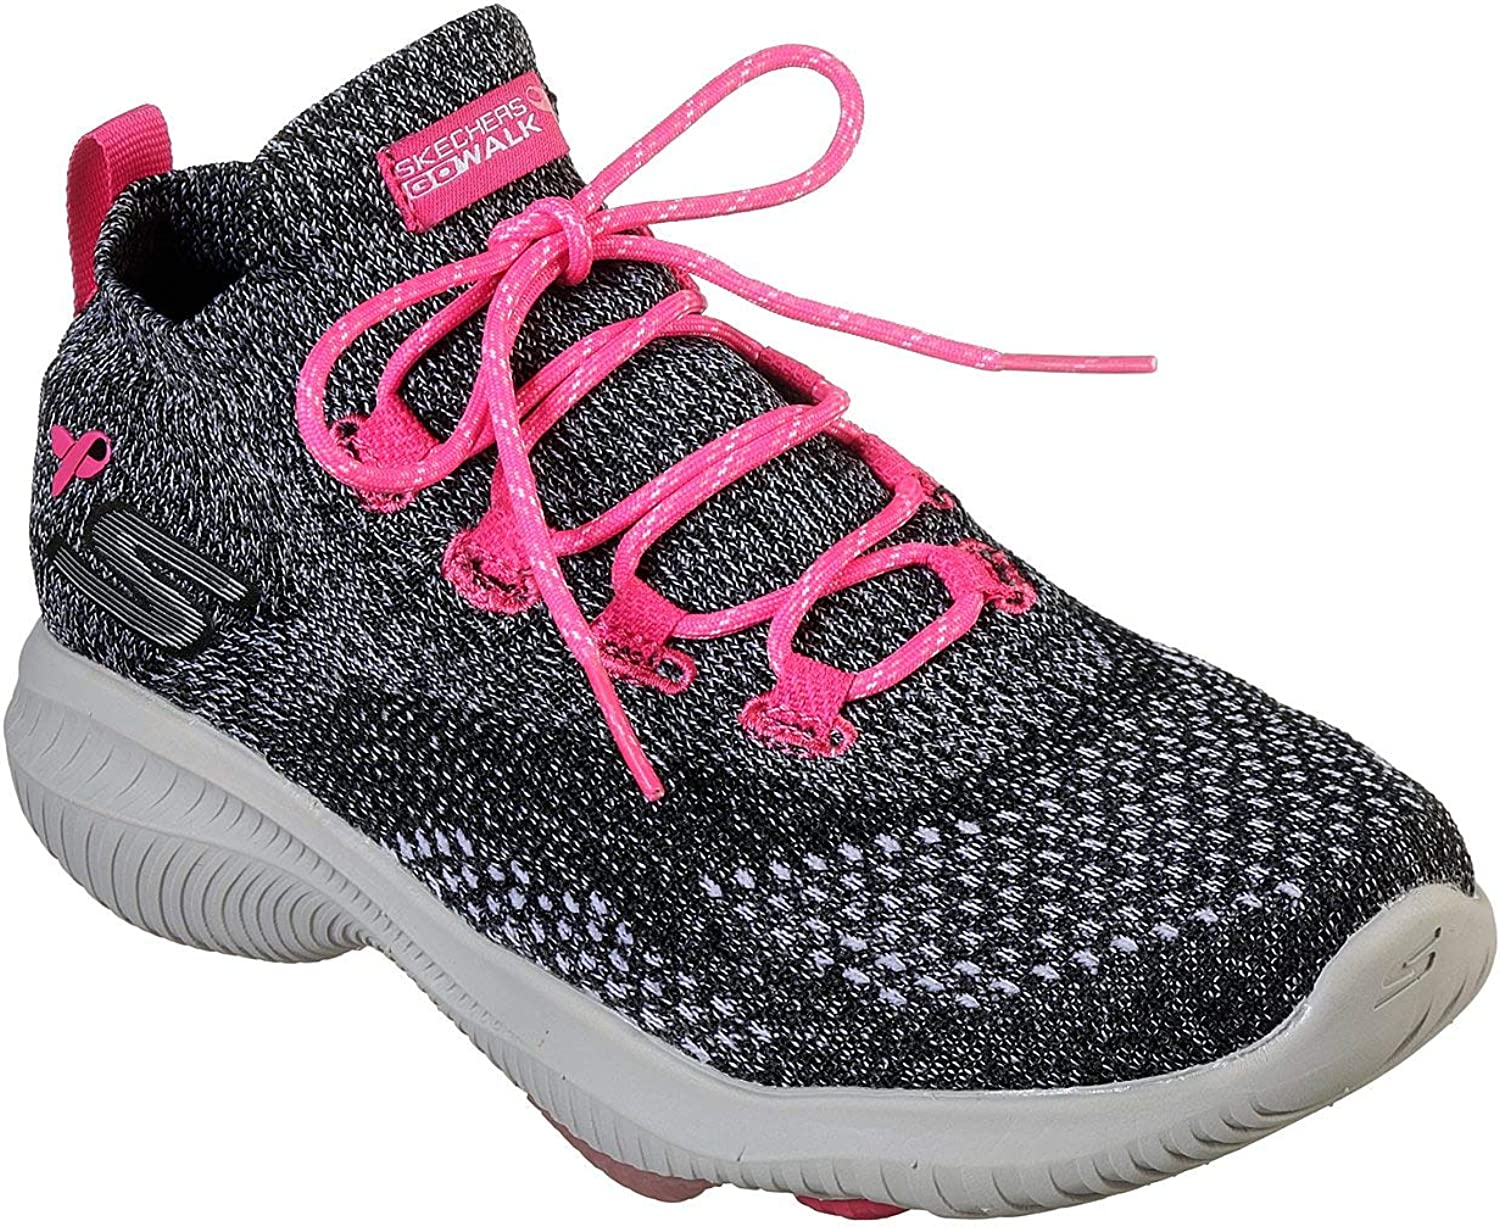 Skechers Womens's Go Walk Revolución Ultra, Walking, Black Pink, US M